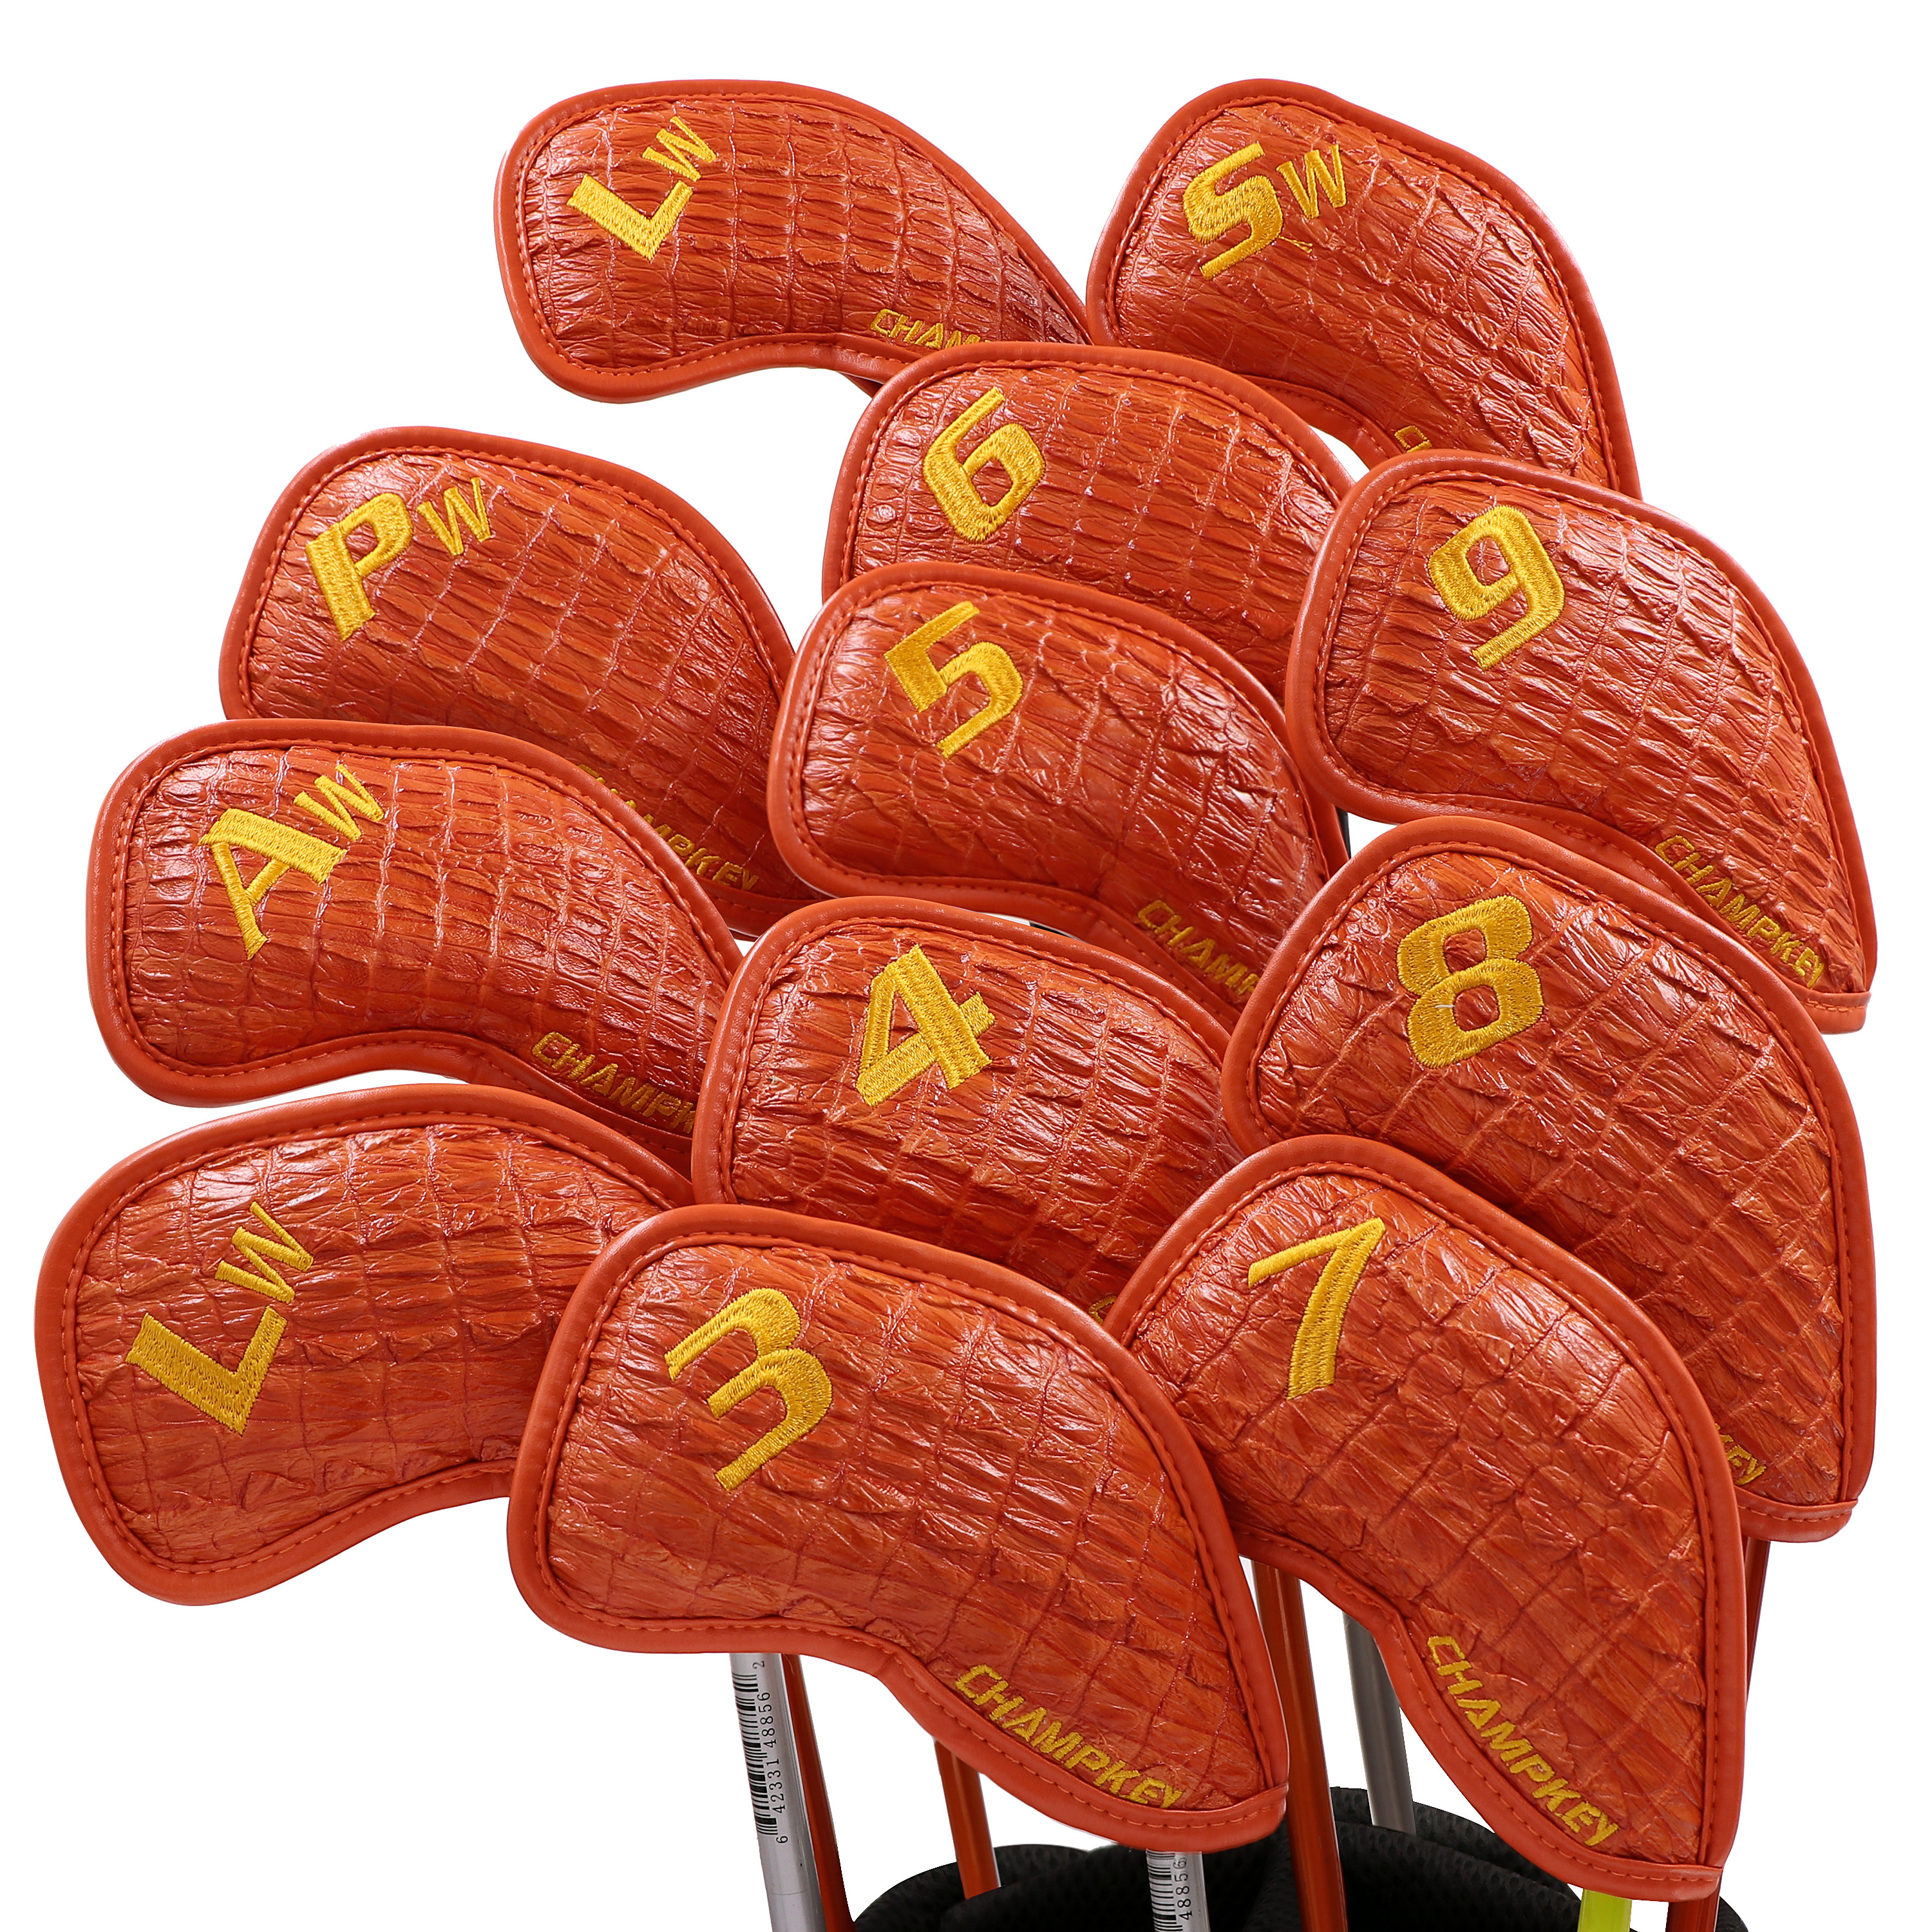 NEW Champkey Golf Iron Headcover Orange Color Snake Thick PU Artificial Leather Stylish Iron Club Head Cover